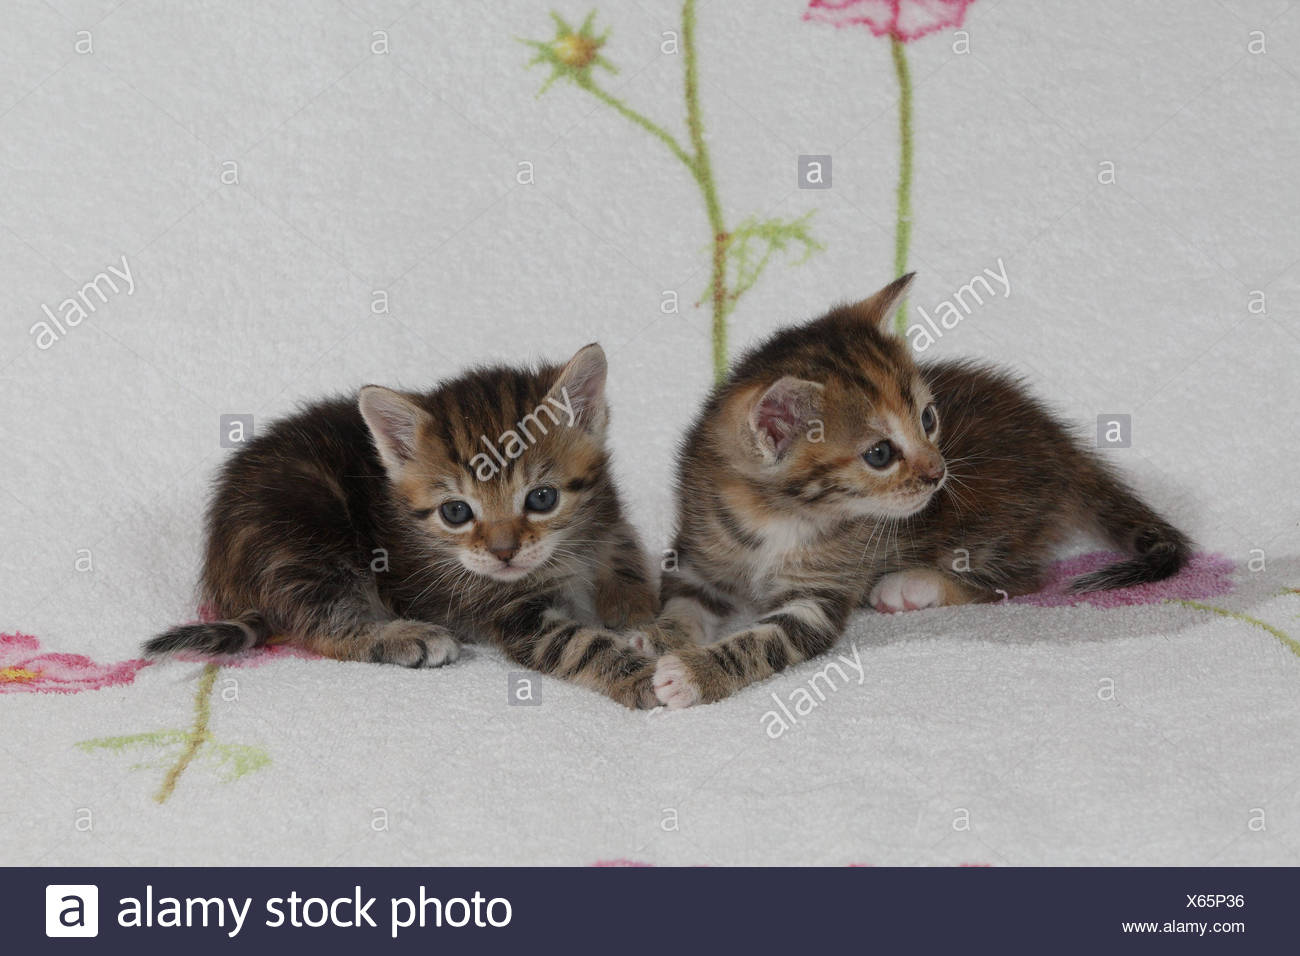 Cats, young, lie, together, bed, animals, mammals, pets, small cats, Felidae, domesticates, house cat, young animal, kitten, two, siblings, small, awkward, clumsy, sweetly, touch, striped, cohesion, love, suture, togetherness, young animals, animal babies, inside, Stock Photo